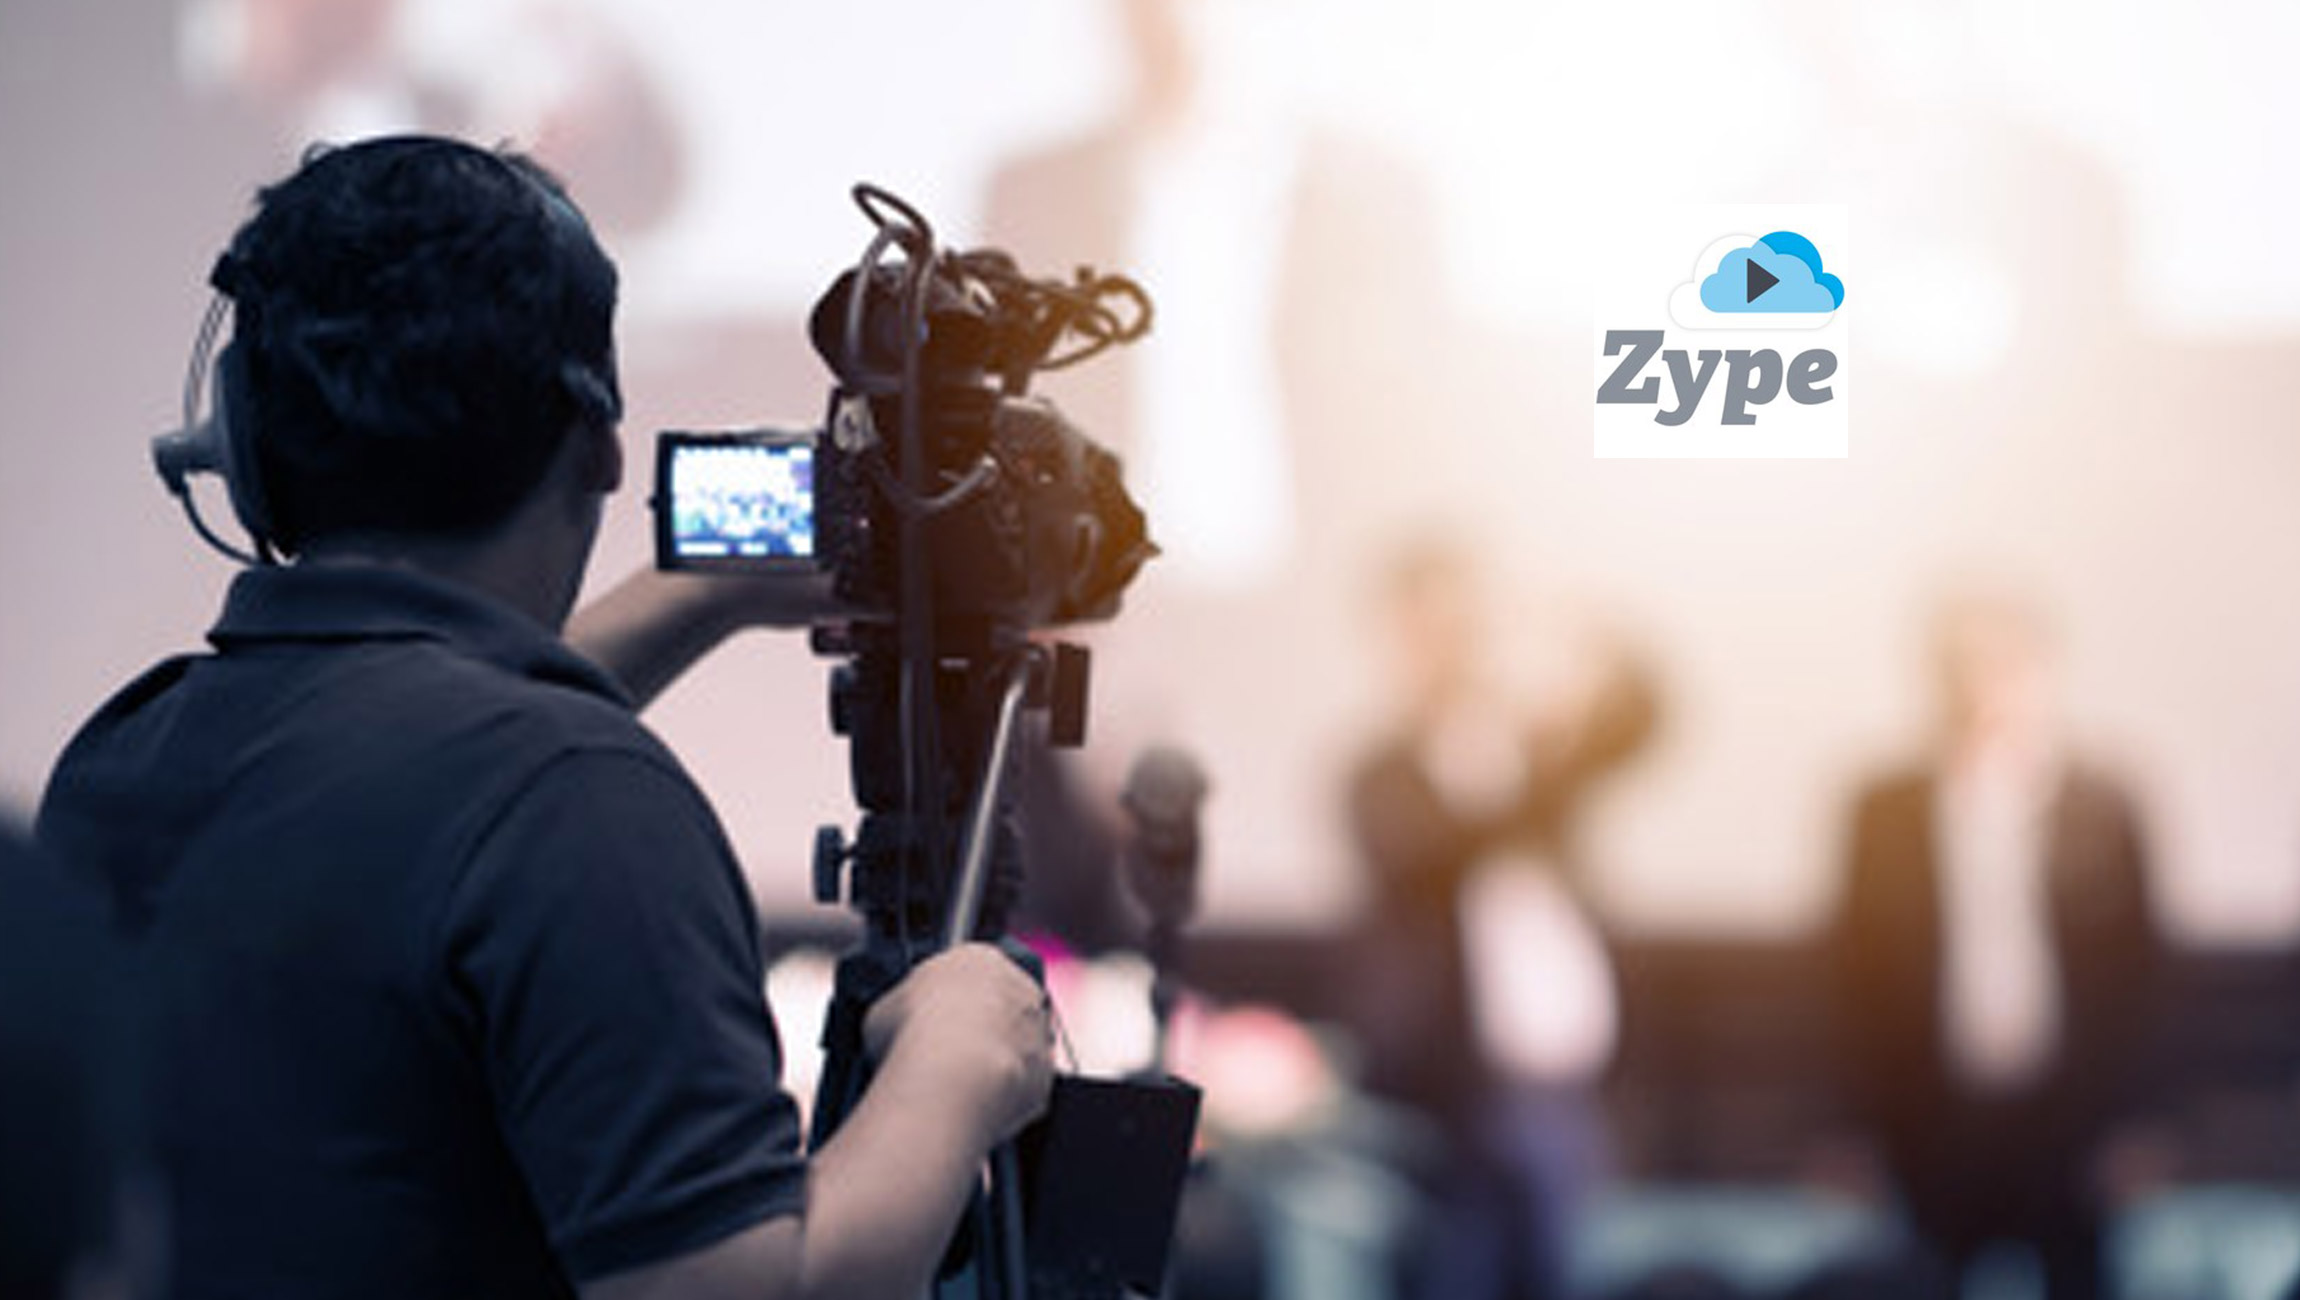 Zype, Video Content Management and Distribution Leader, Wins OTT Exec Company of the Year